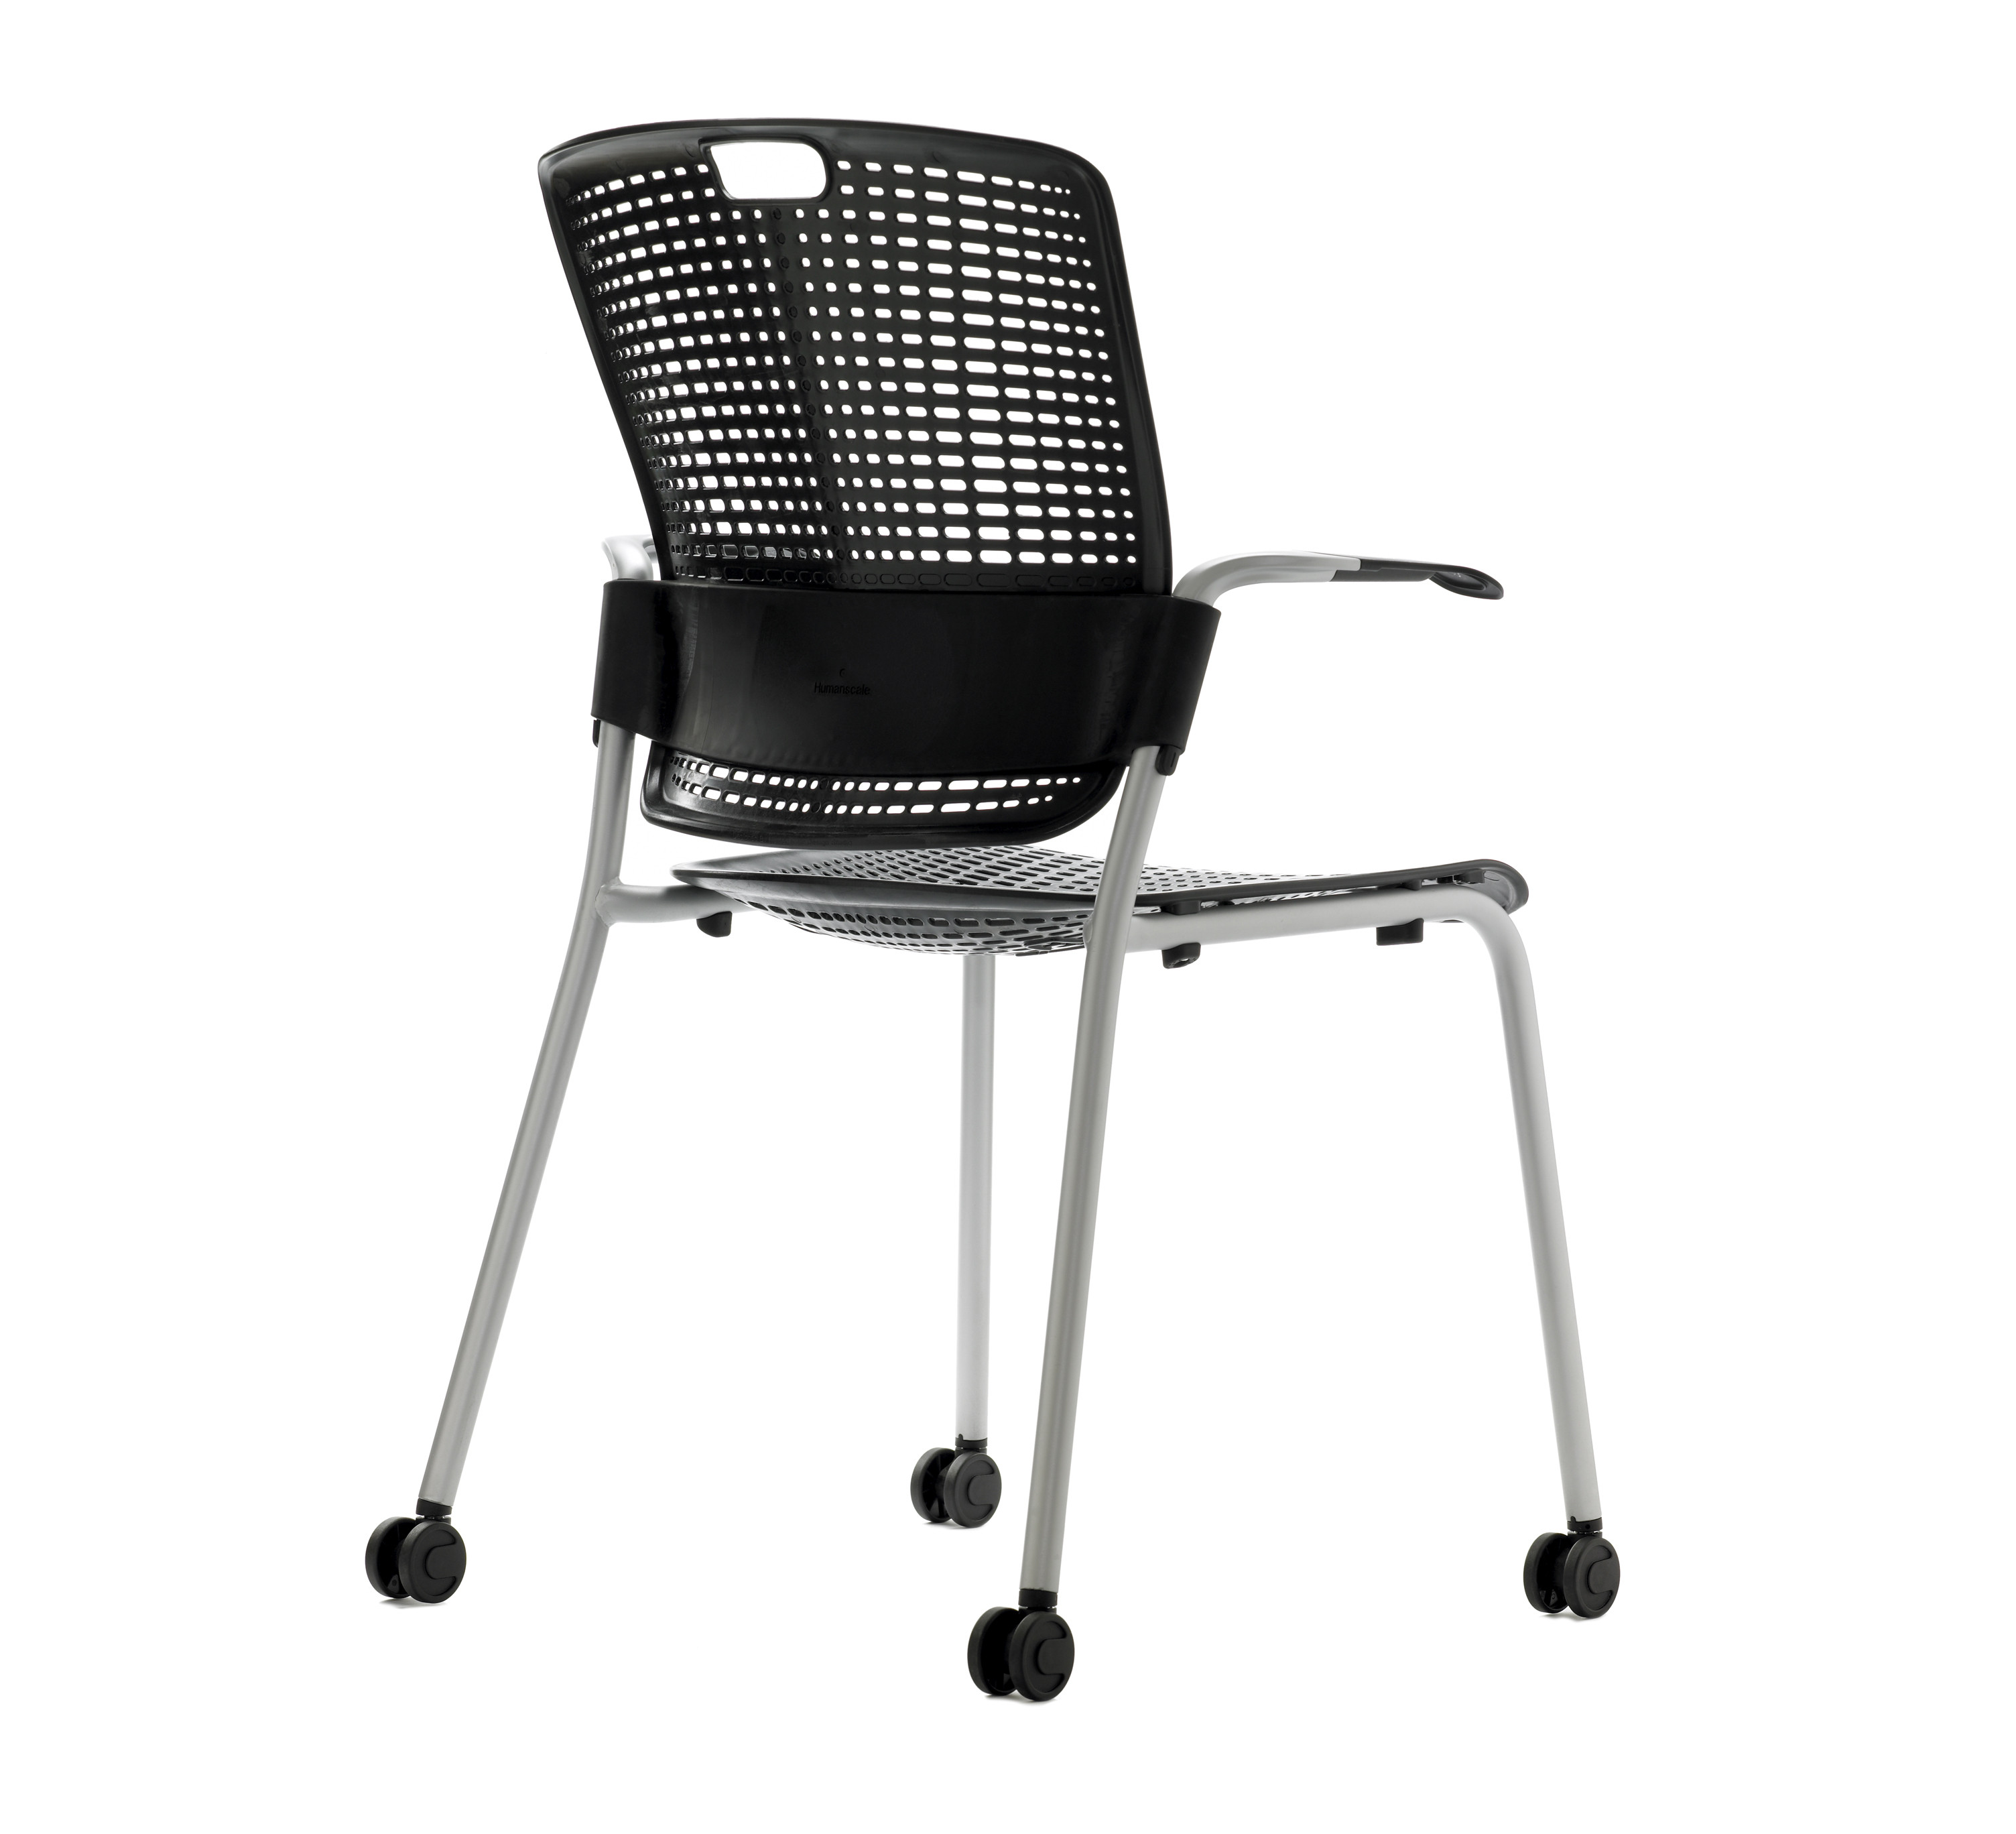 Armed Chair Humanscale